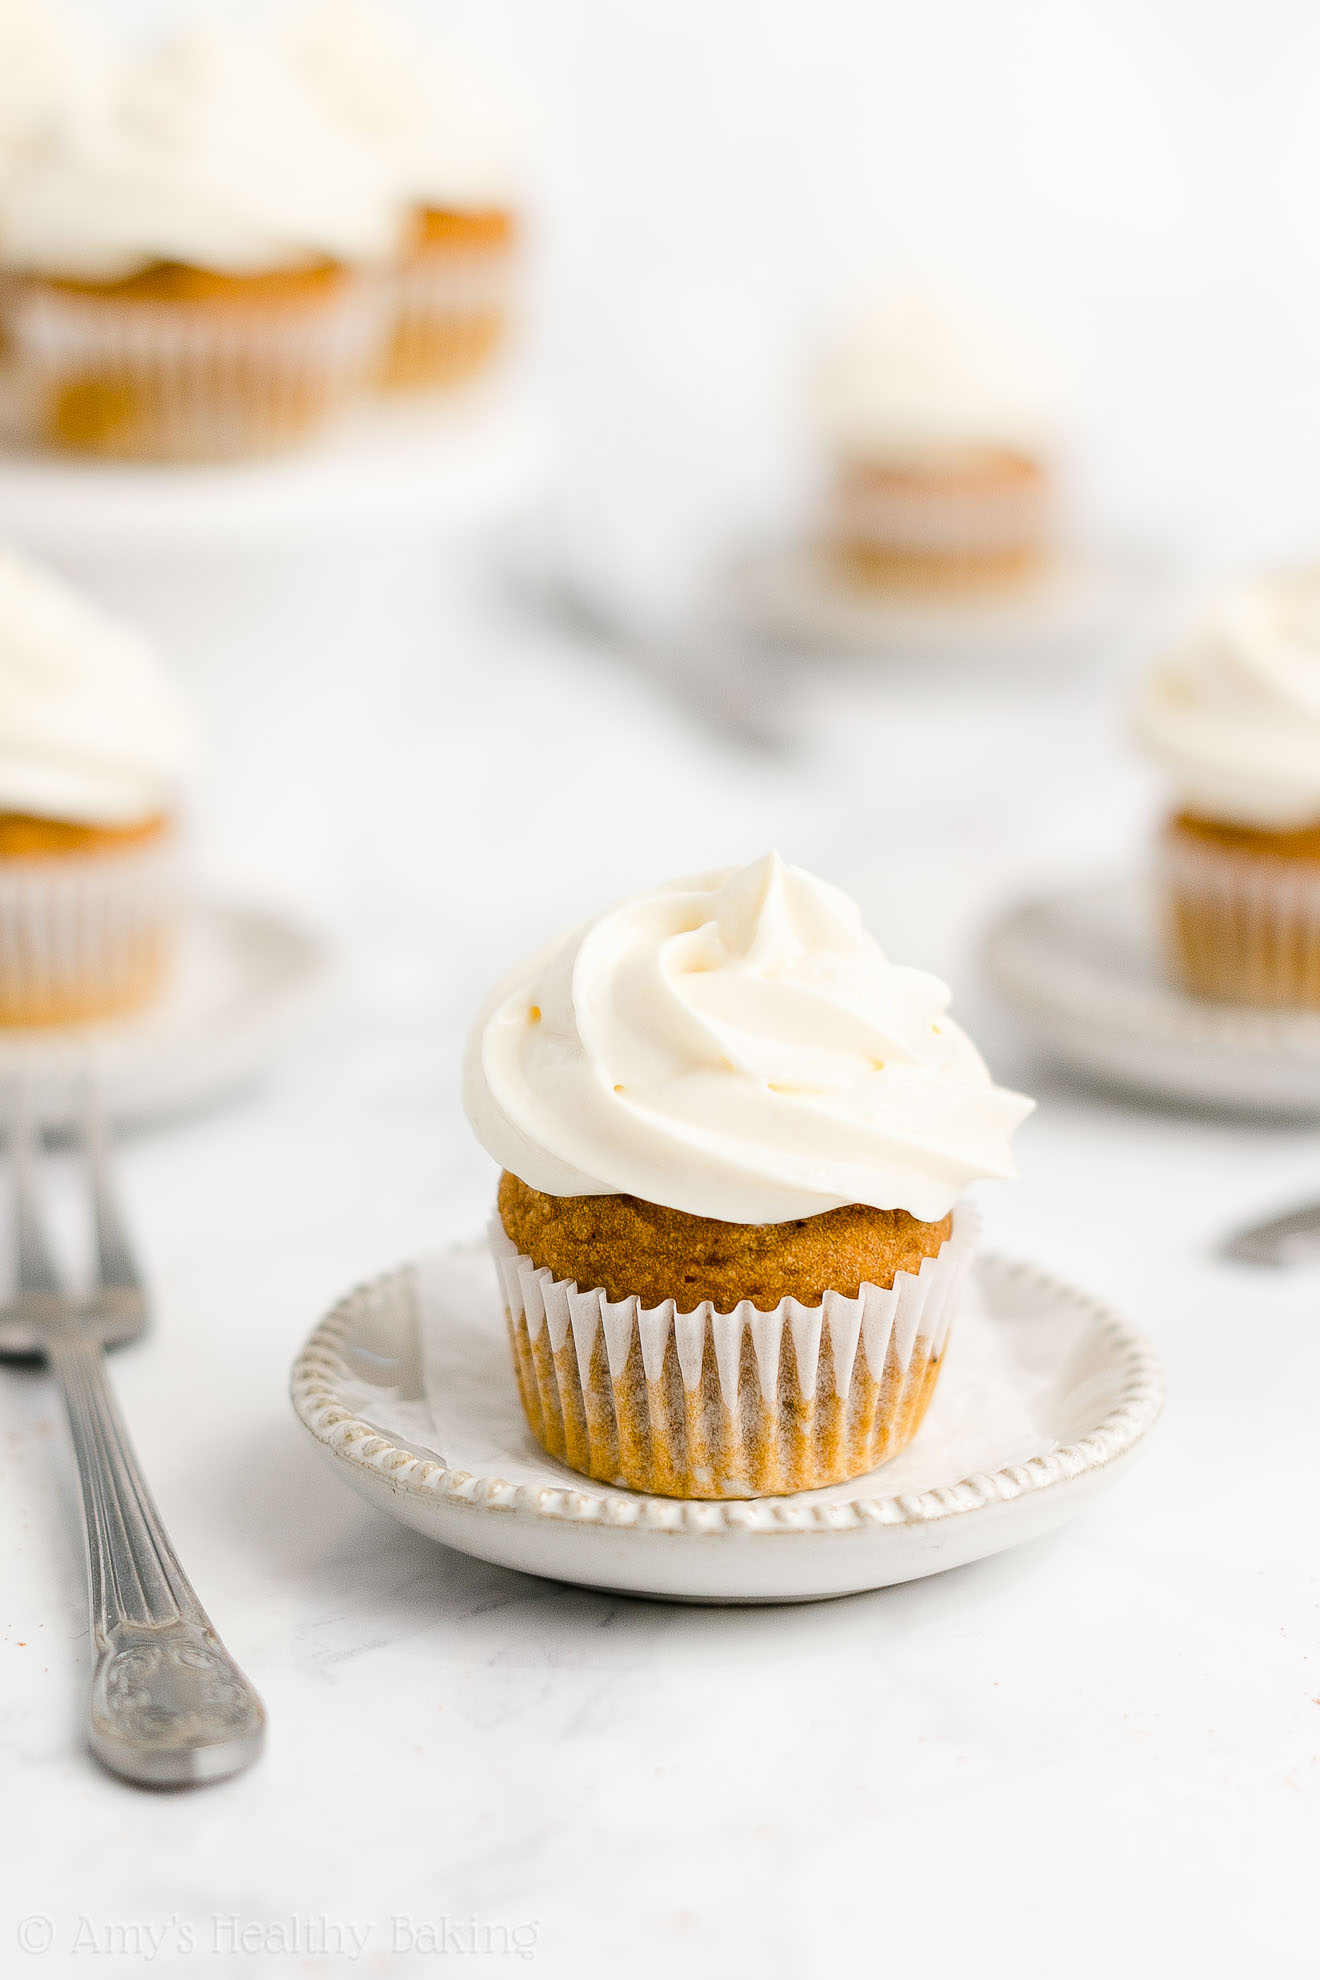 Best Easy Healthy Sugar Free Mini Pumpkin Cupcakes + Cream Cheese Frosting